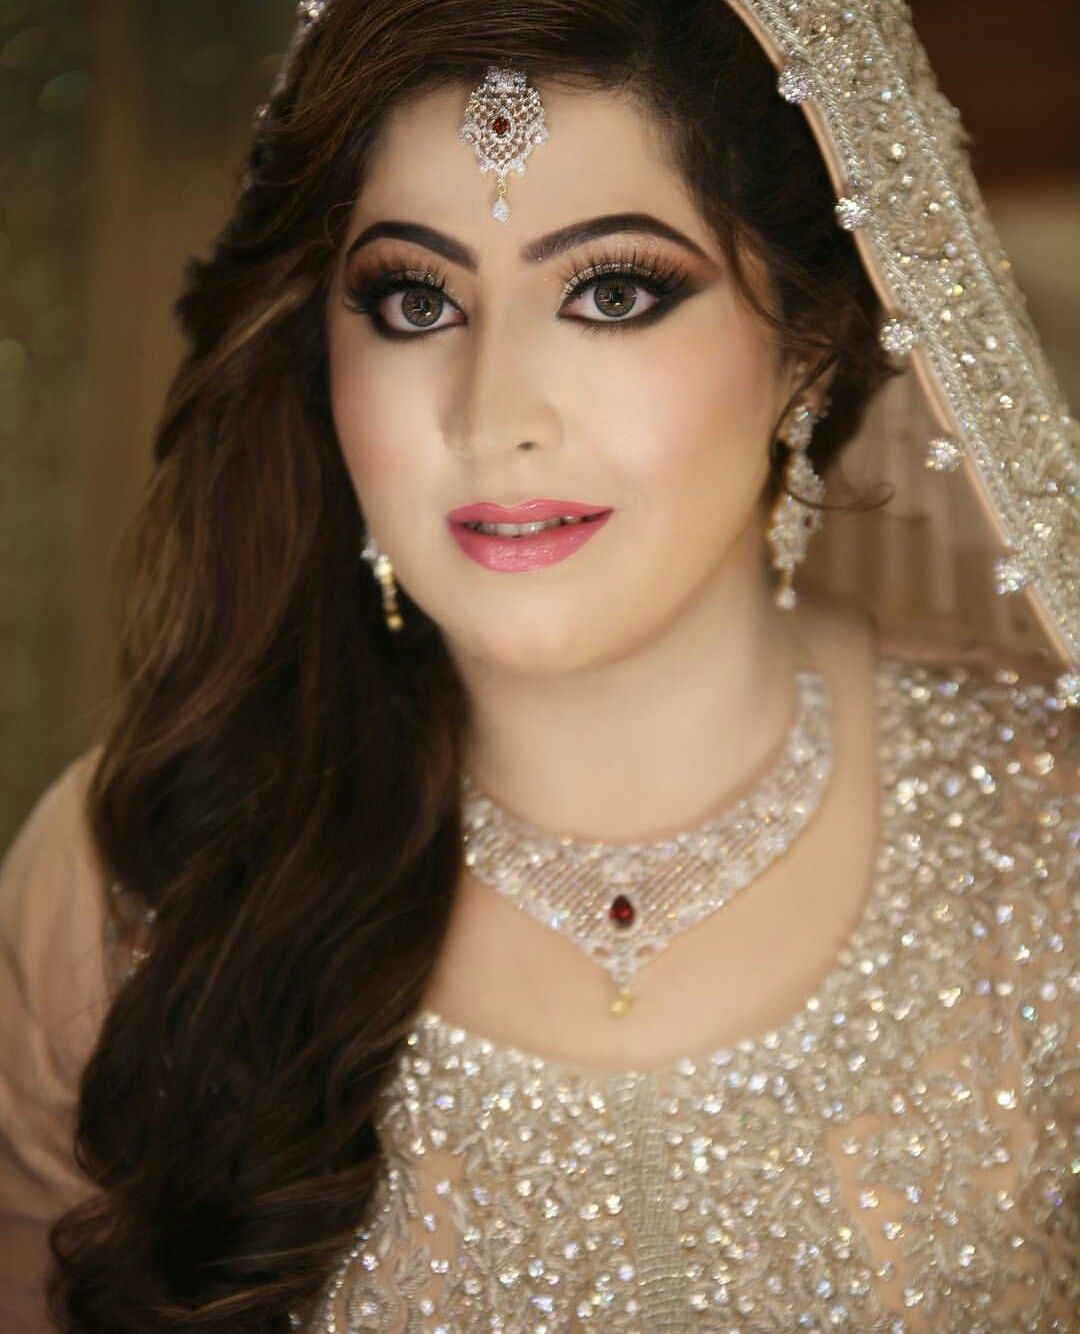 Wedding Hairstyle For Chubby Face: Pakistani Bridal Hairstyles For Round Faces